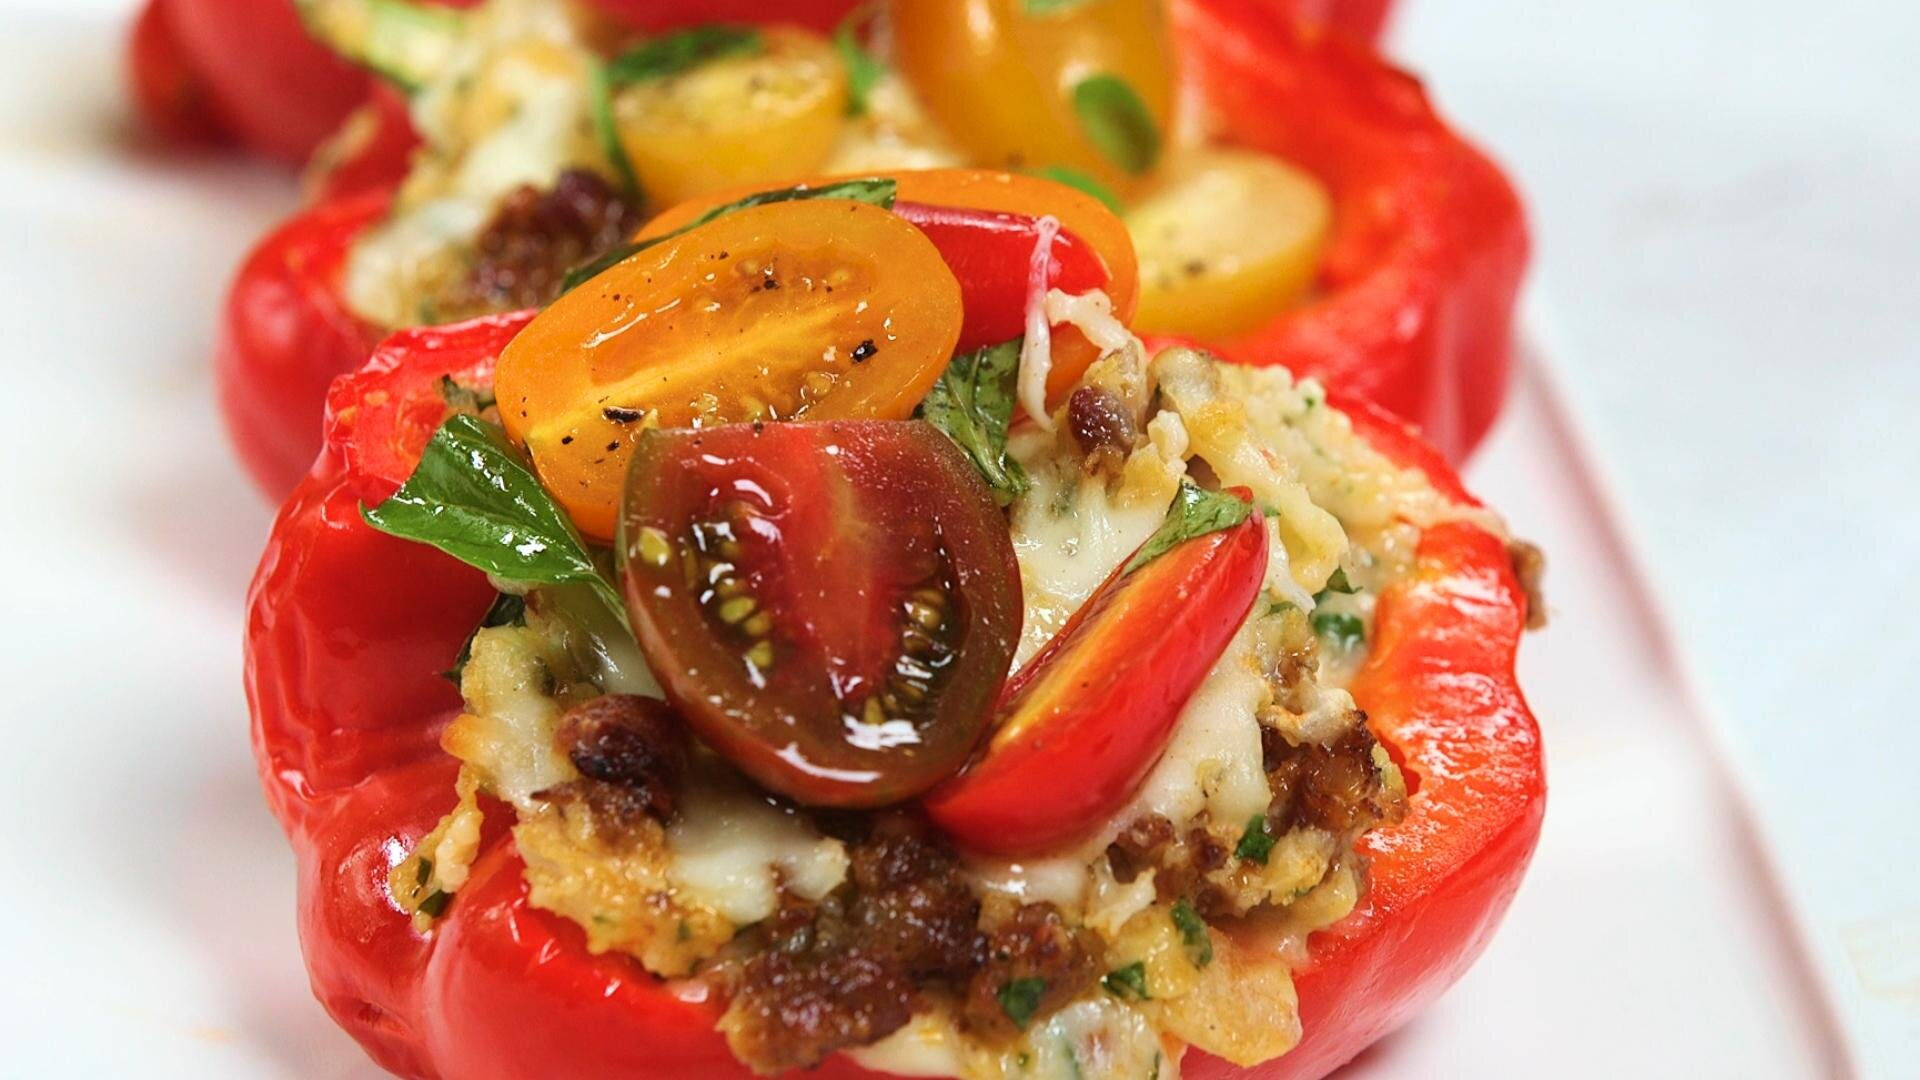 How to Make Stuffed Peppers with Grits and Sausage